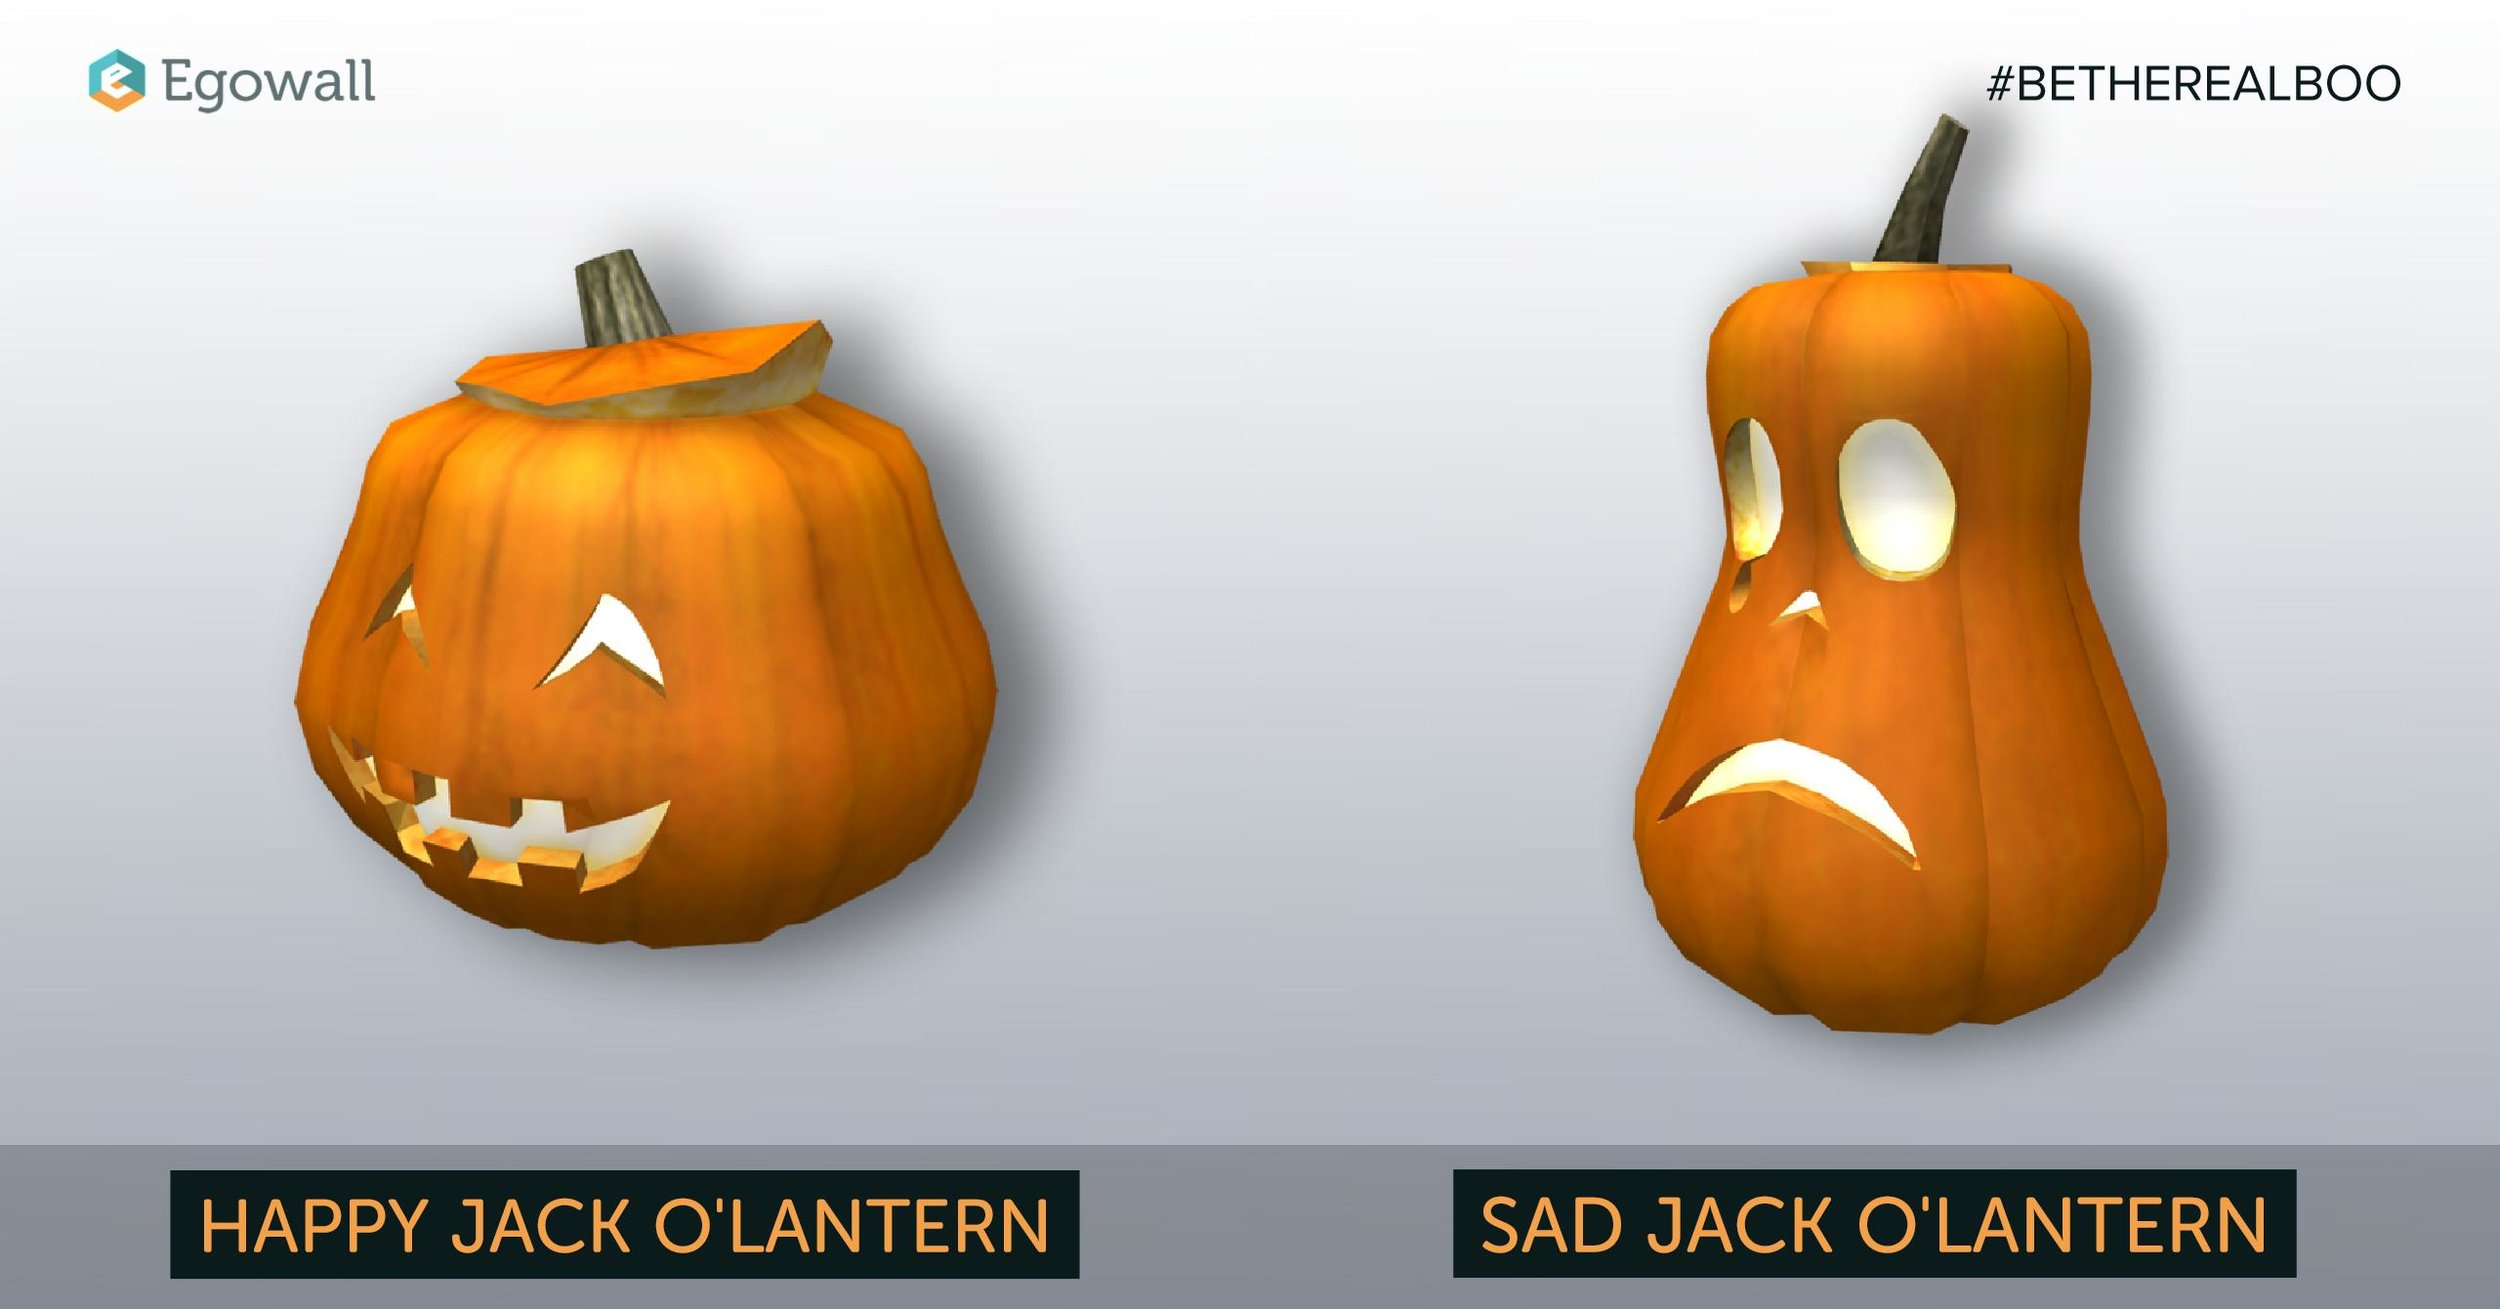 Two of Our Three Jack O'Lantern Assets